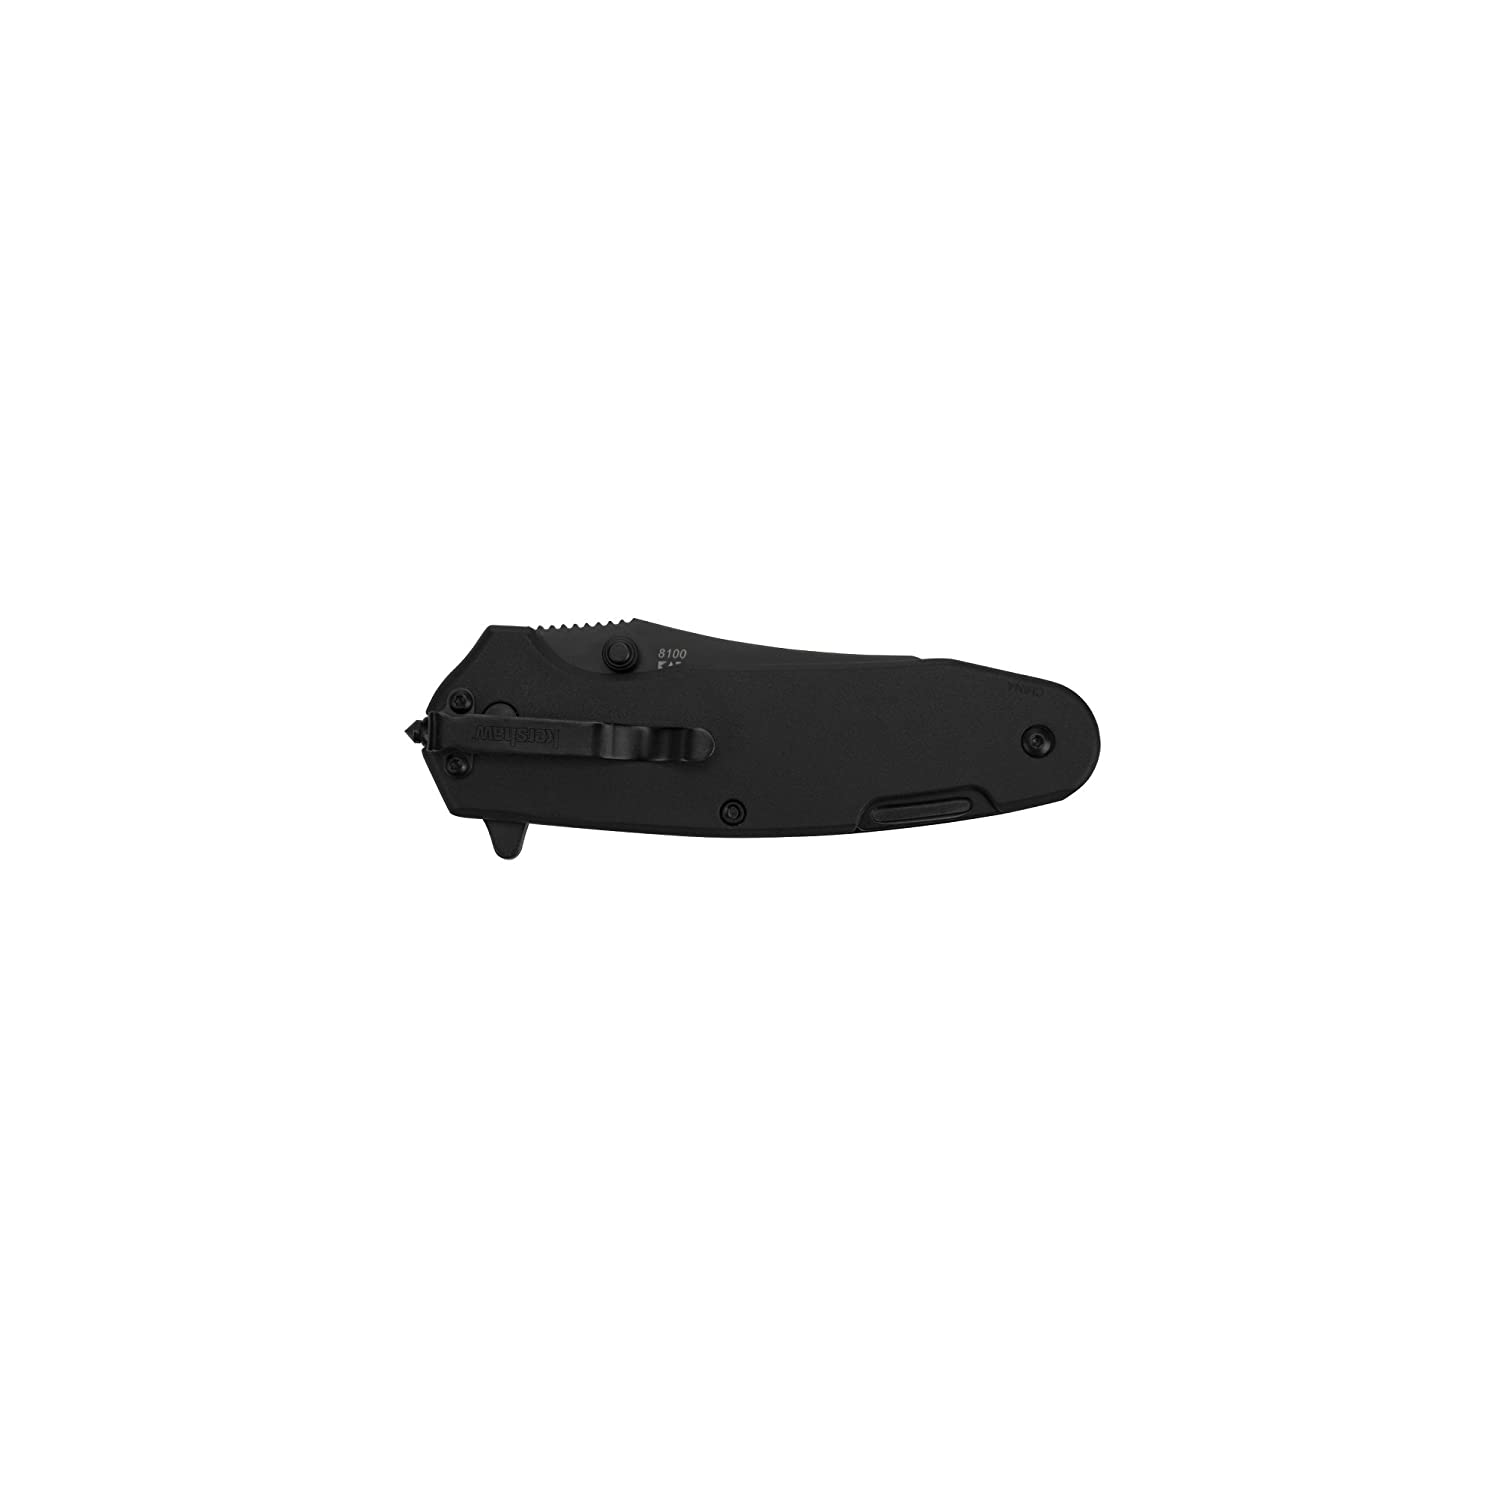 Amazon.com: Kershaw 8100 funxion EMT con speedsafe: Kershaw ...